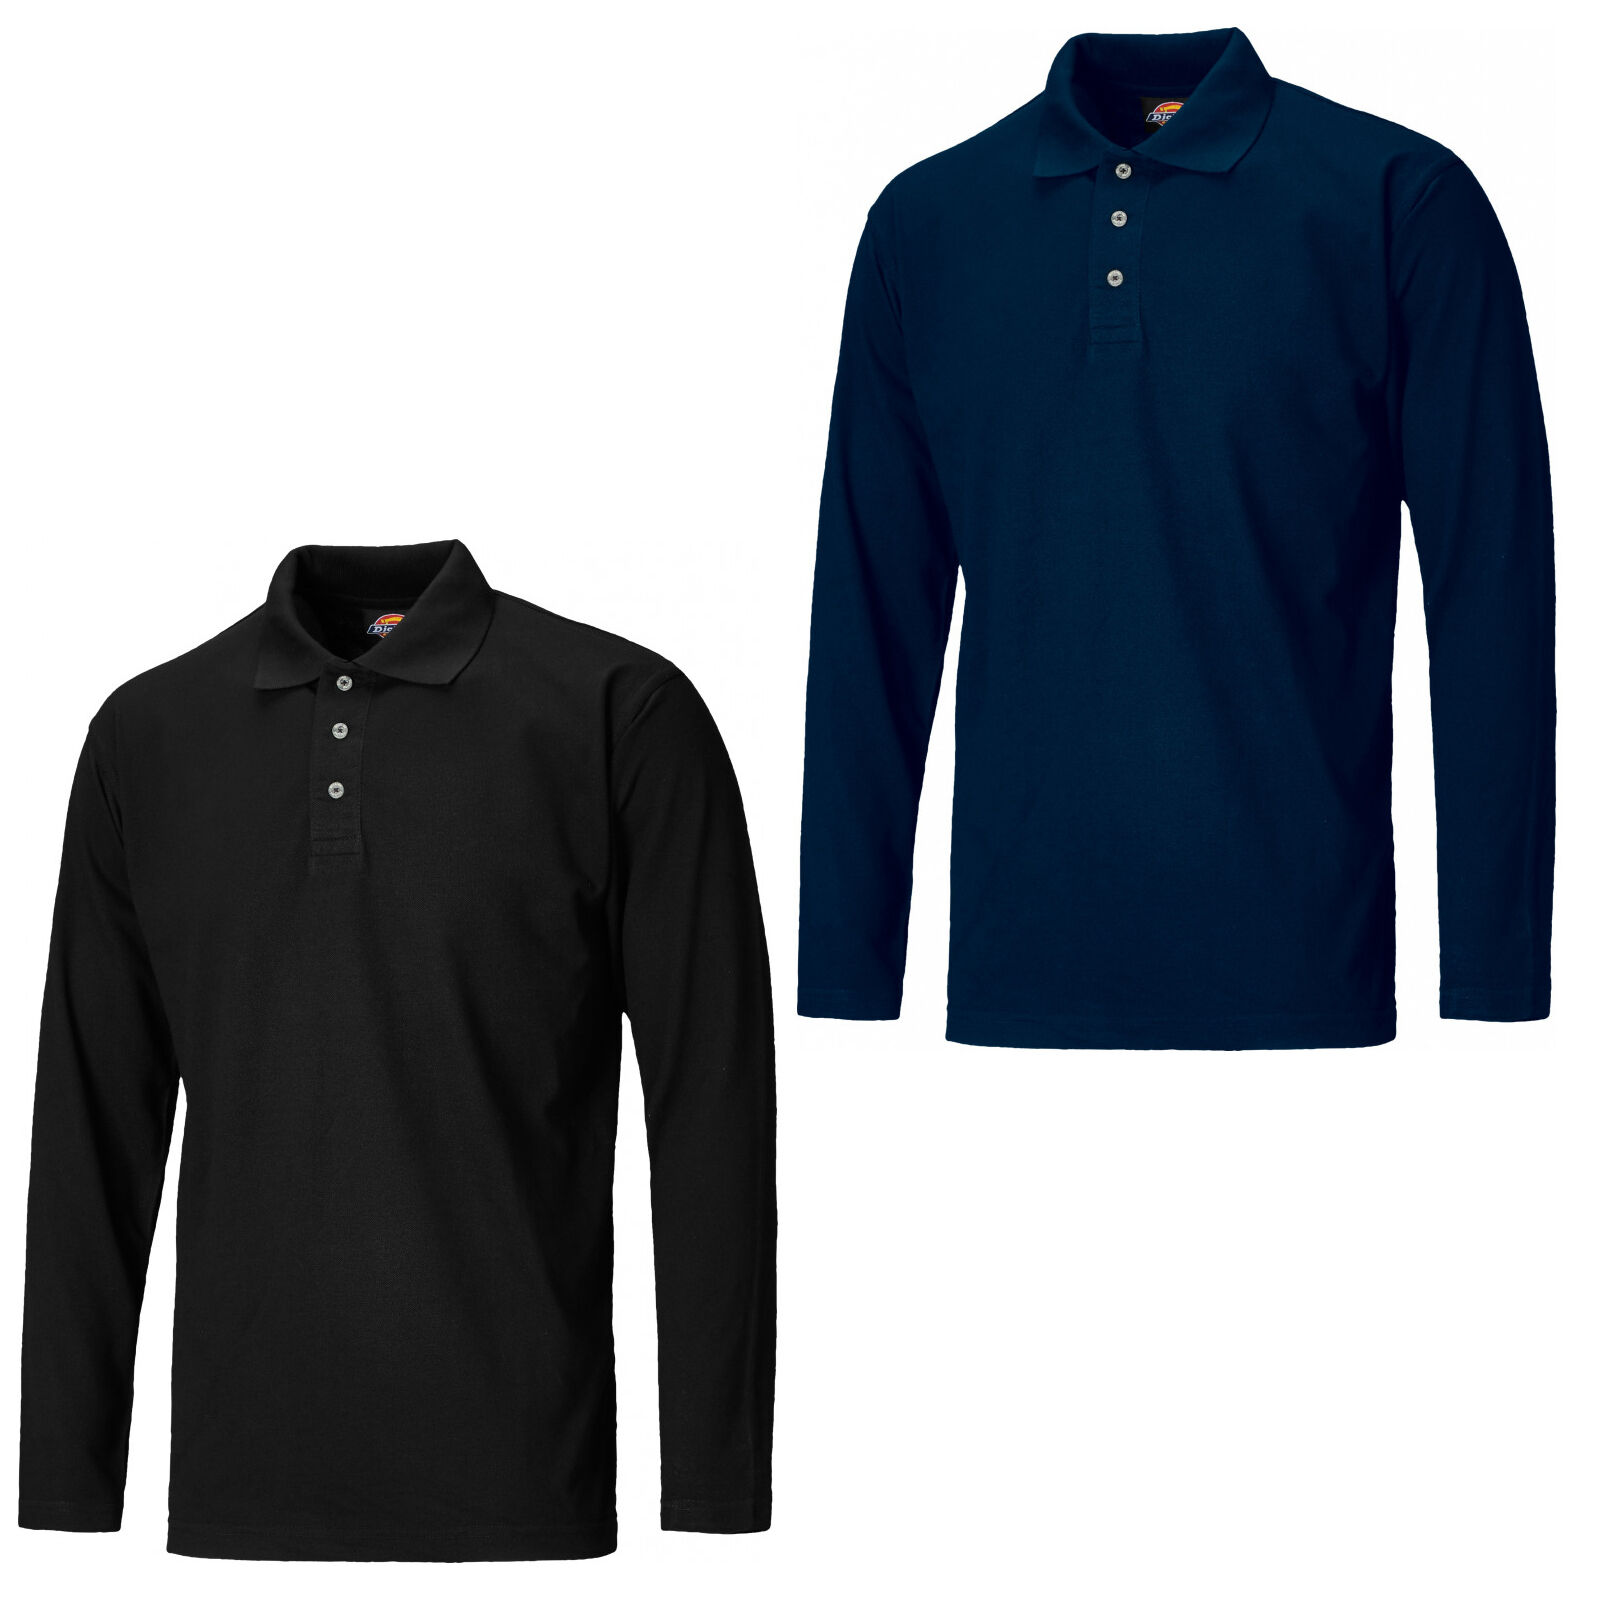 1353feb65118 Details about Dickies Long Sleeve Polo Shirt Mens Durable 3 Button Work T- Shirt SH21100